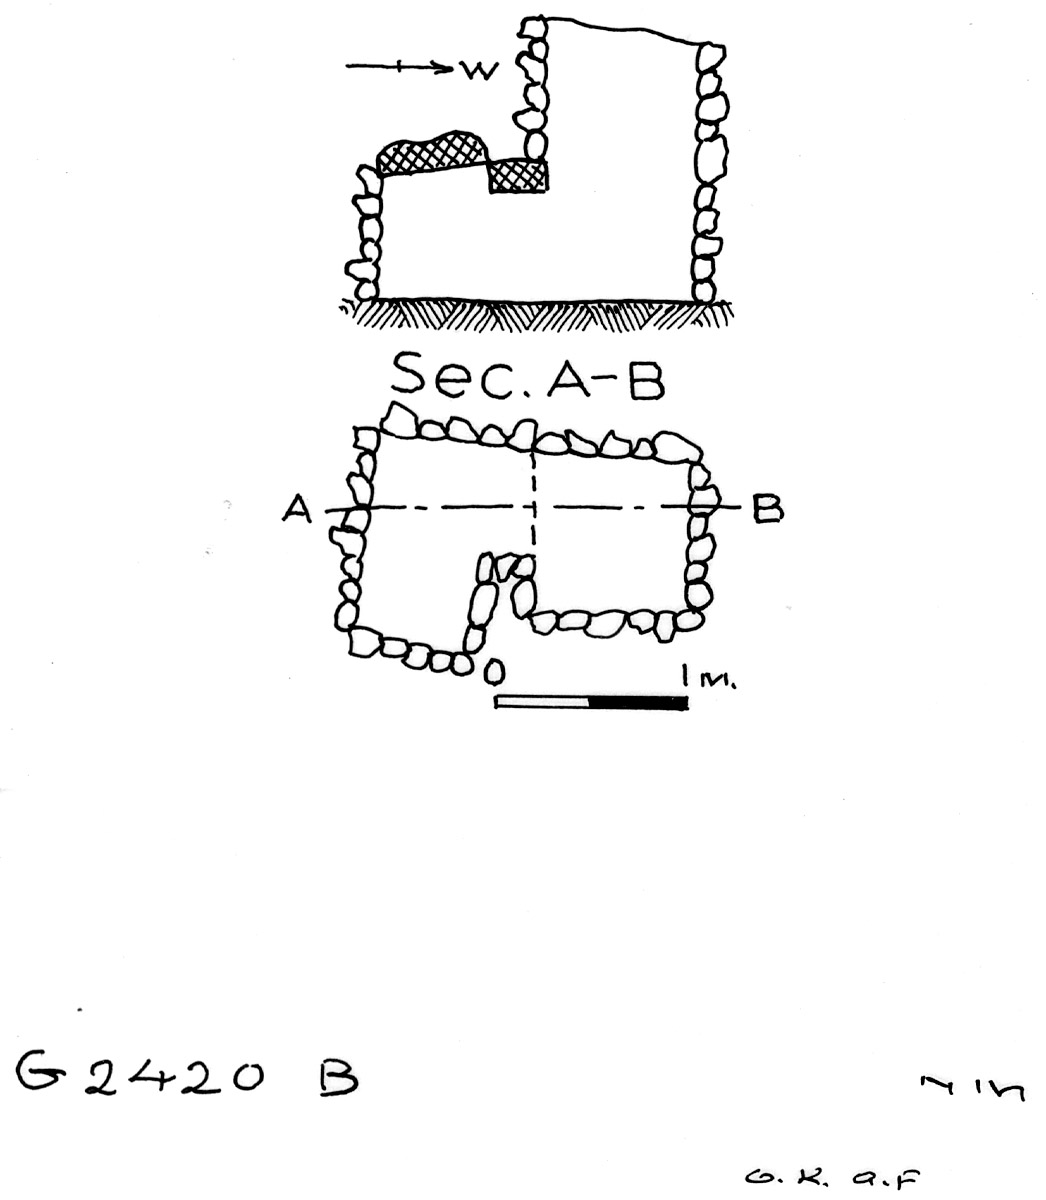 Maps and plans: G 2420, Shaft B